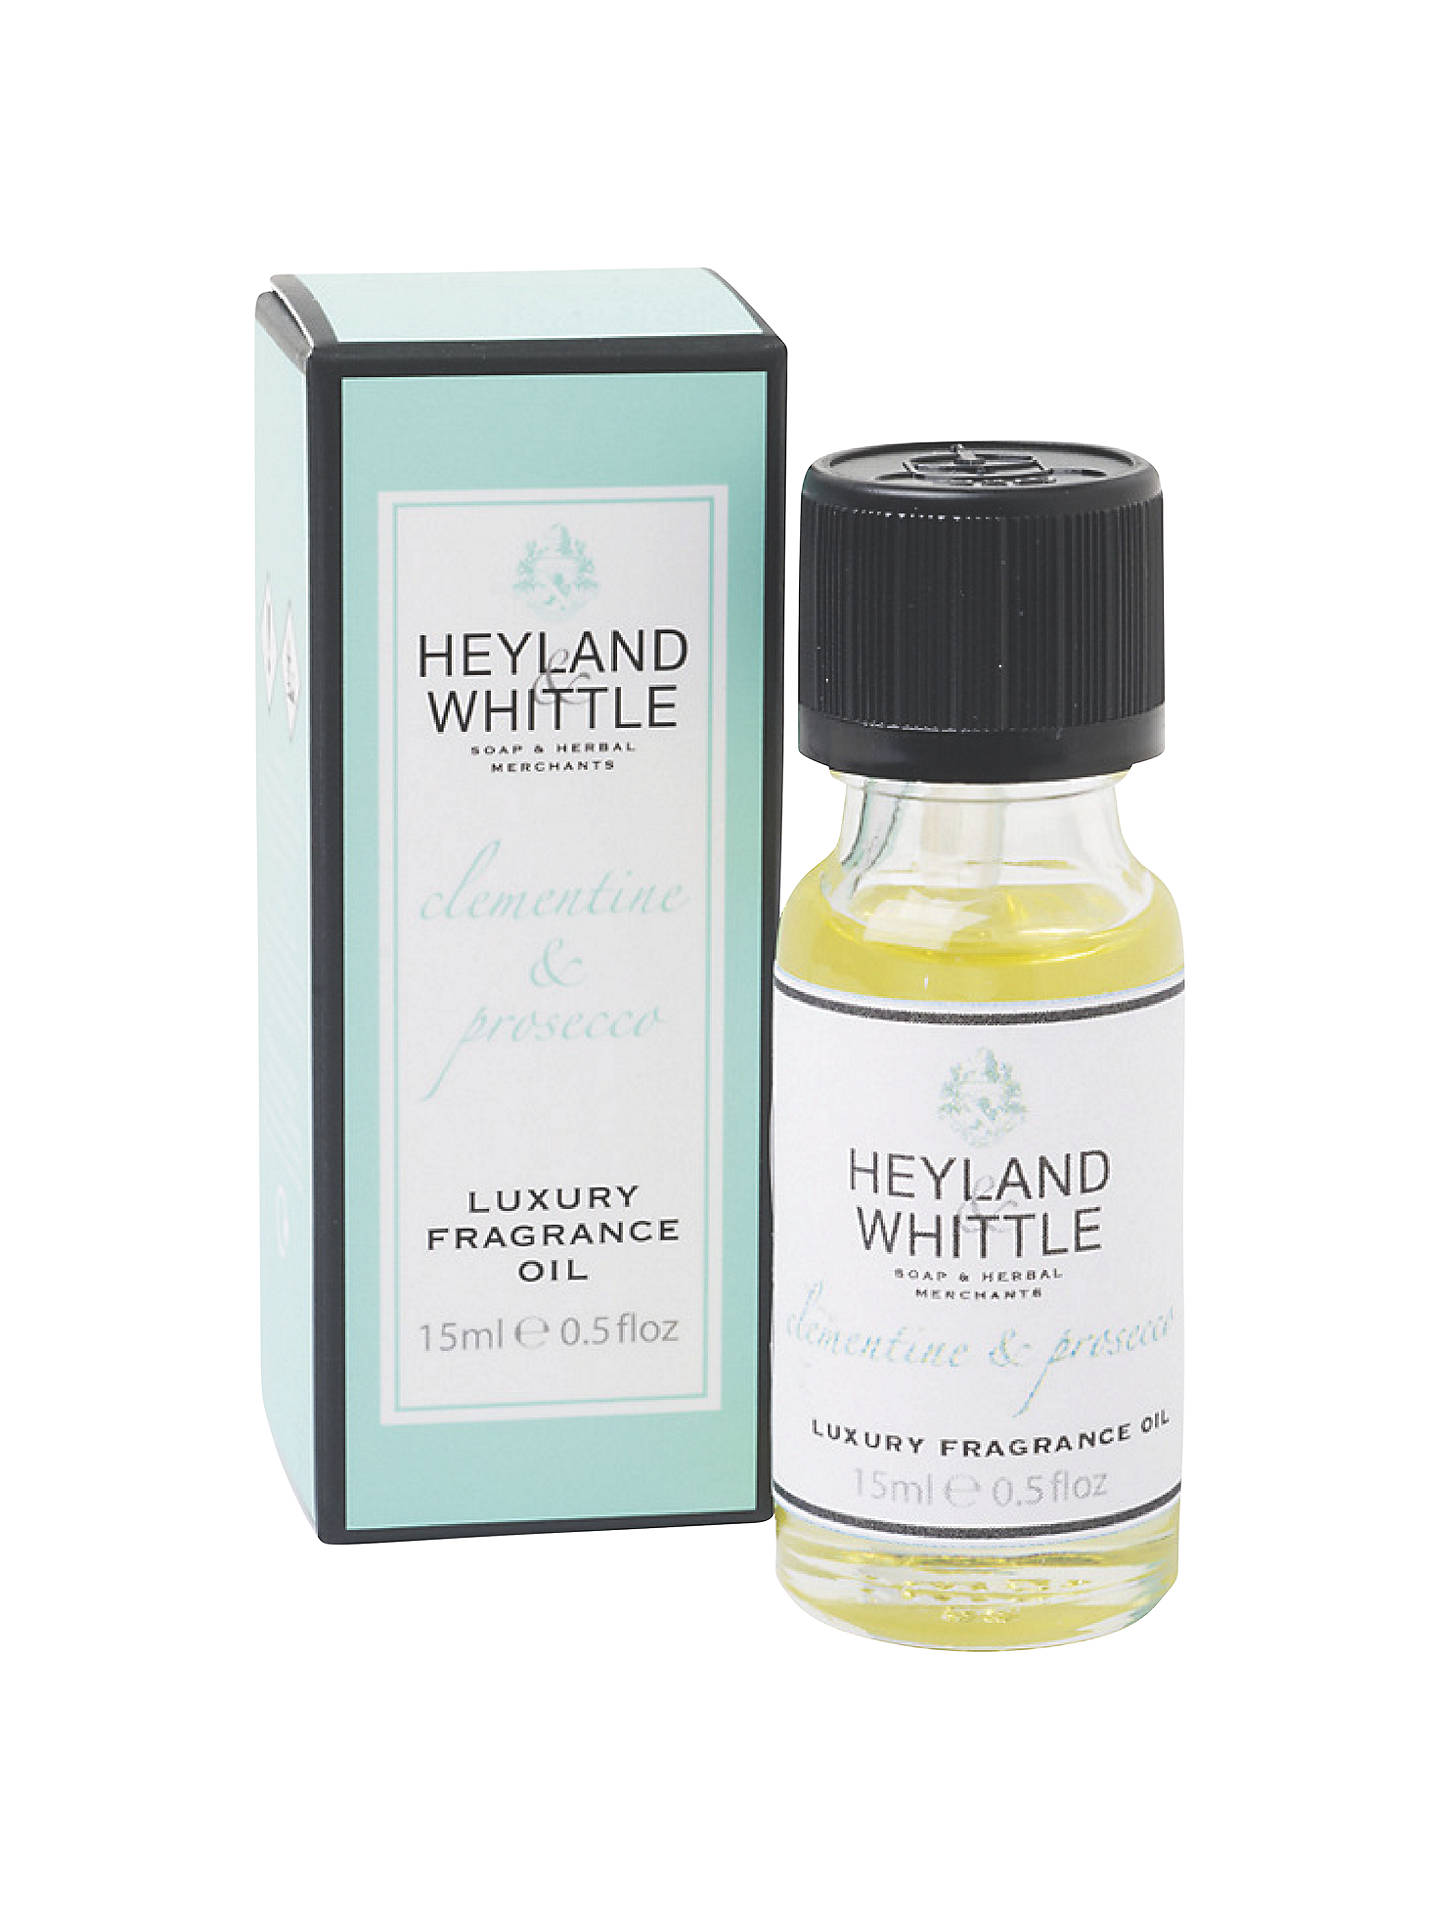 Heyland & Whittle Clementine & Prosecco Oil, 15ml at John